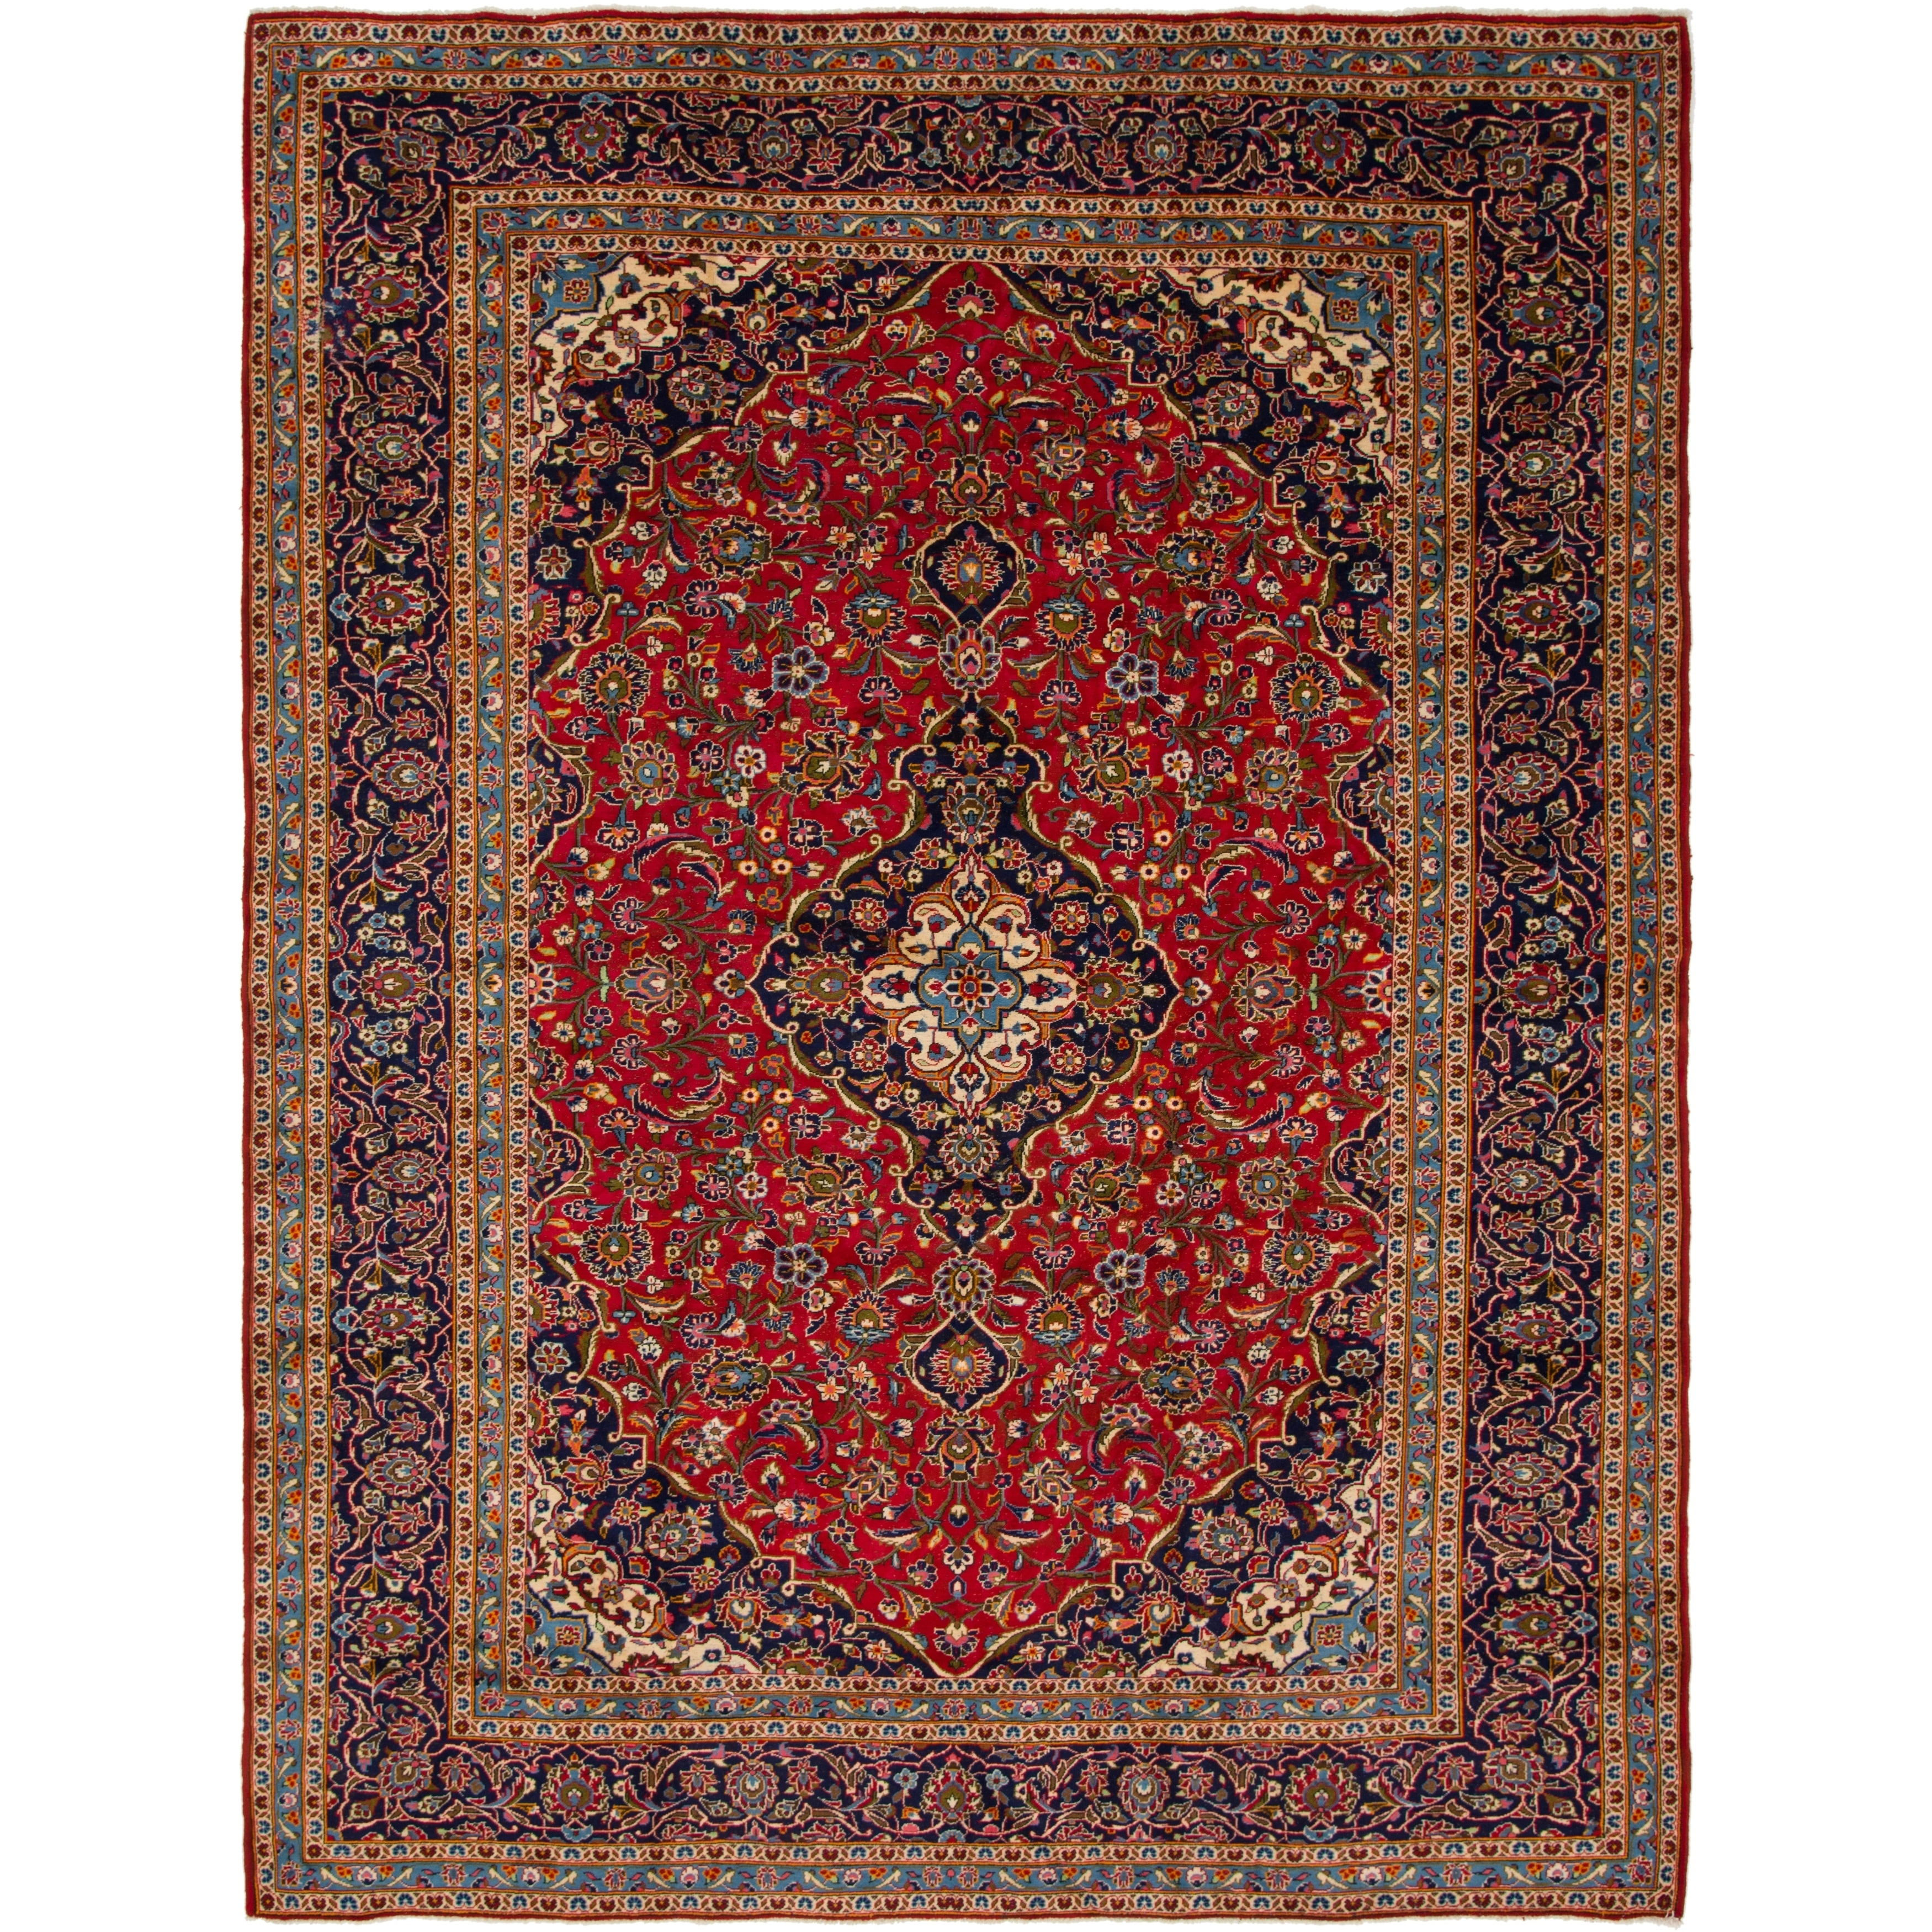 Hand Knotted Kashan Semi Antique Wool Area Rug - 9 10 x 12 10 (Red - 9 10 x 12 10)